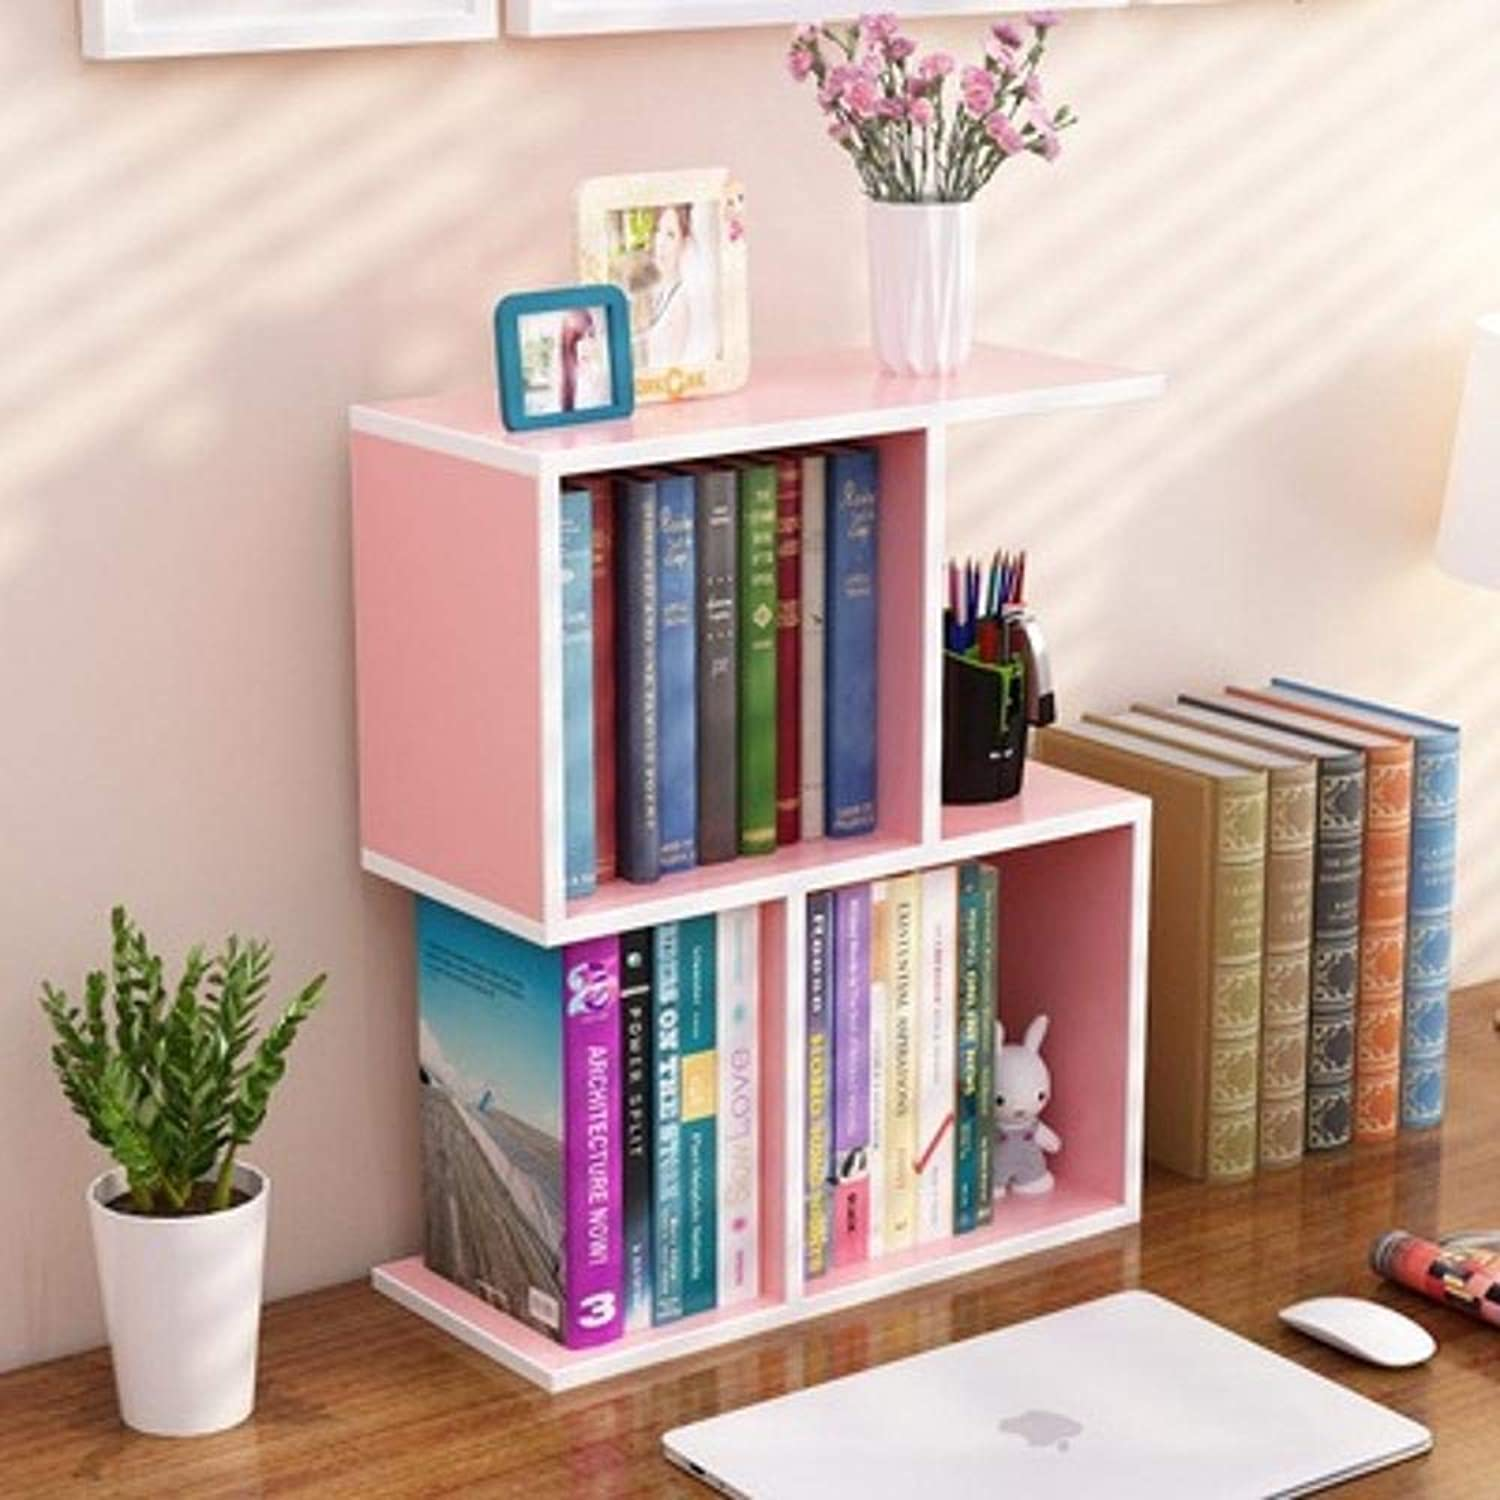 Yunfeng Bookshelf,Floor-Standing Multifunctional Rack Desktop Panel Storage Storage Shelf